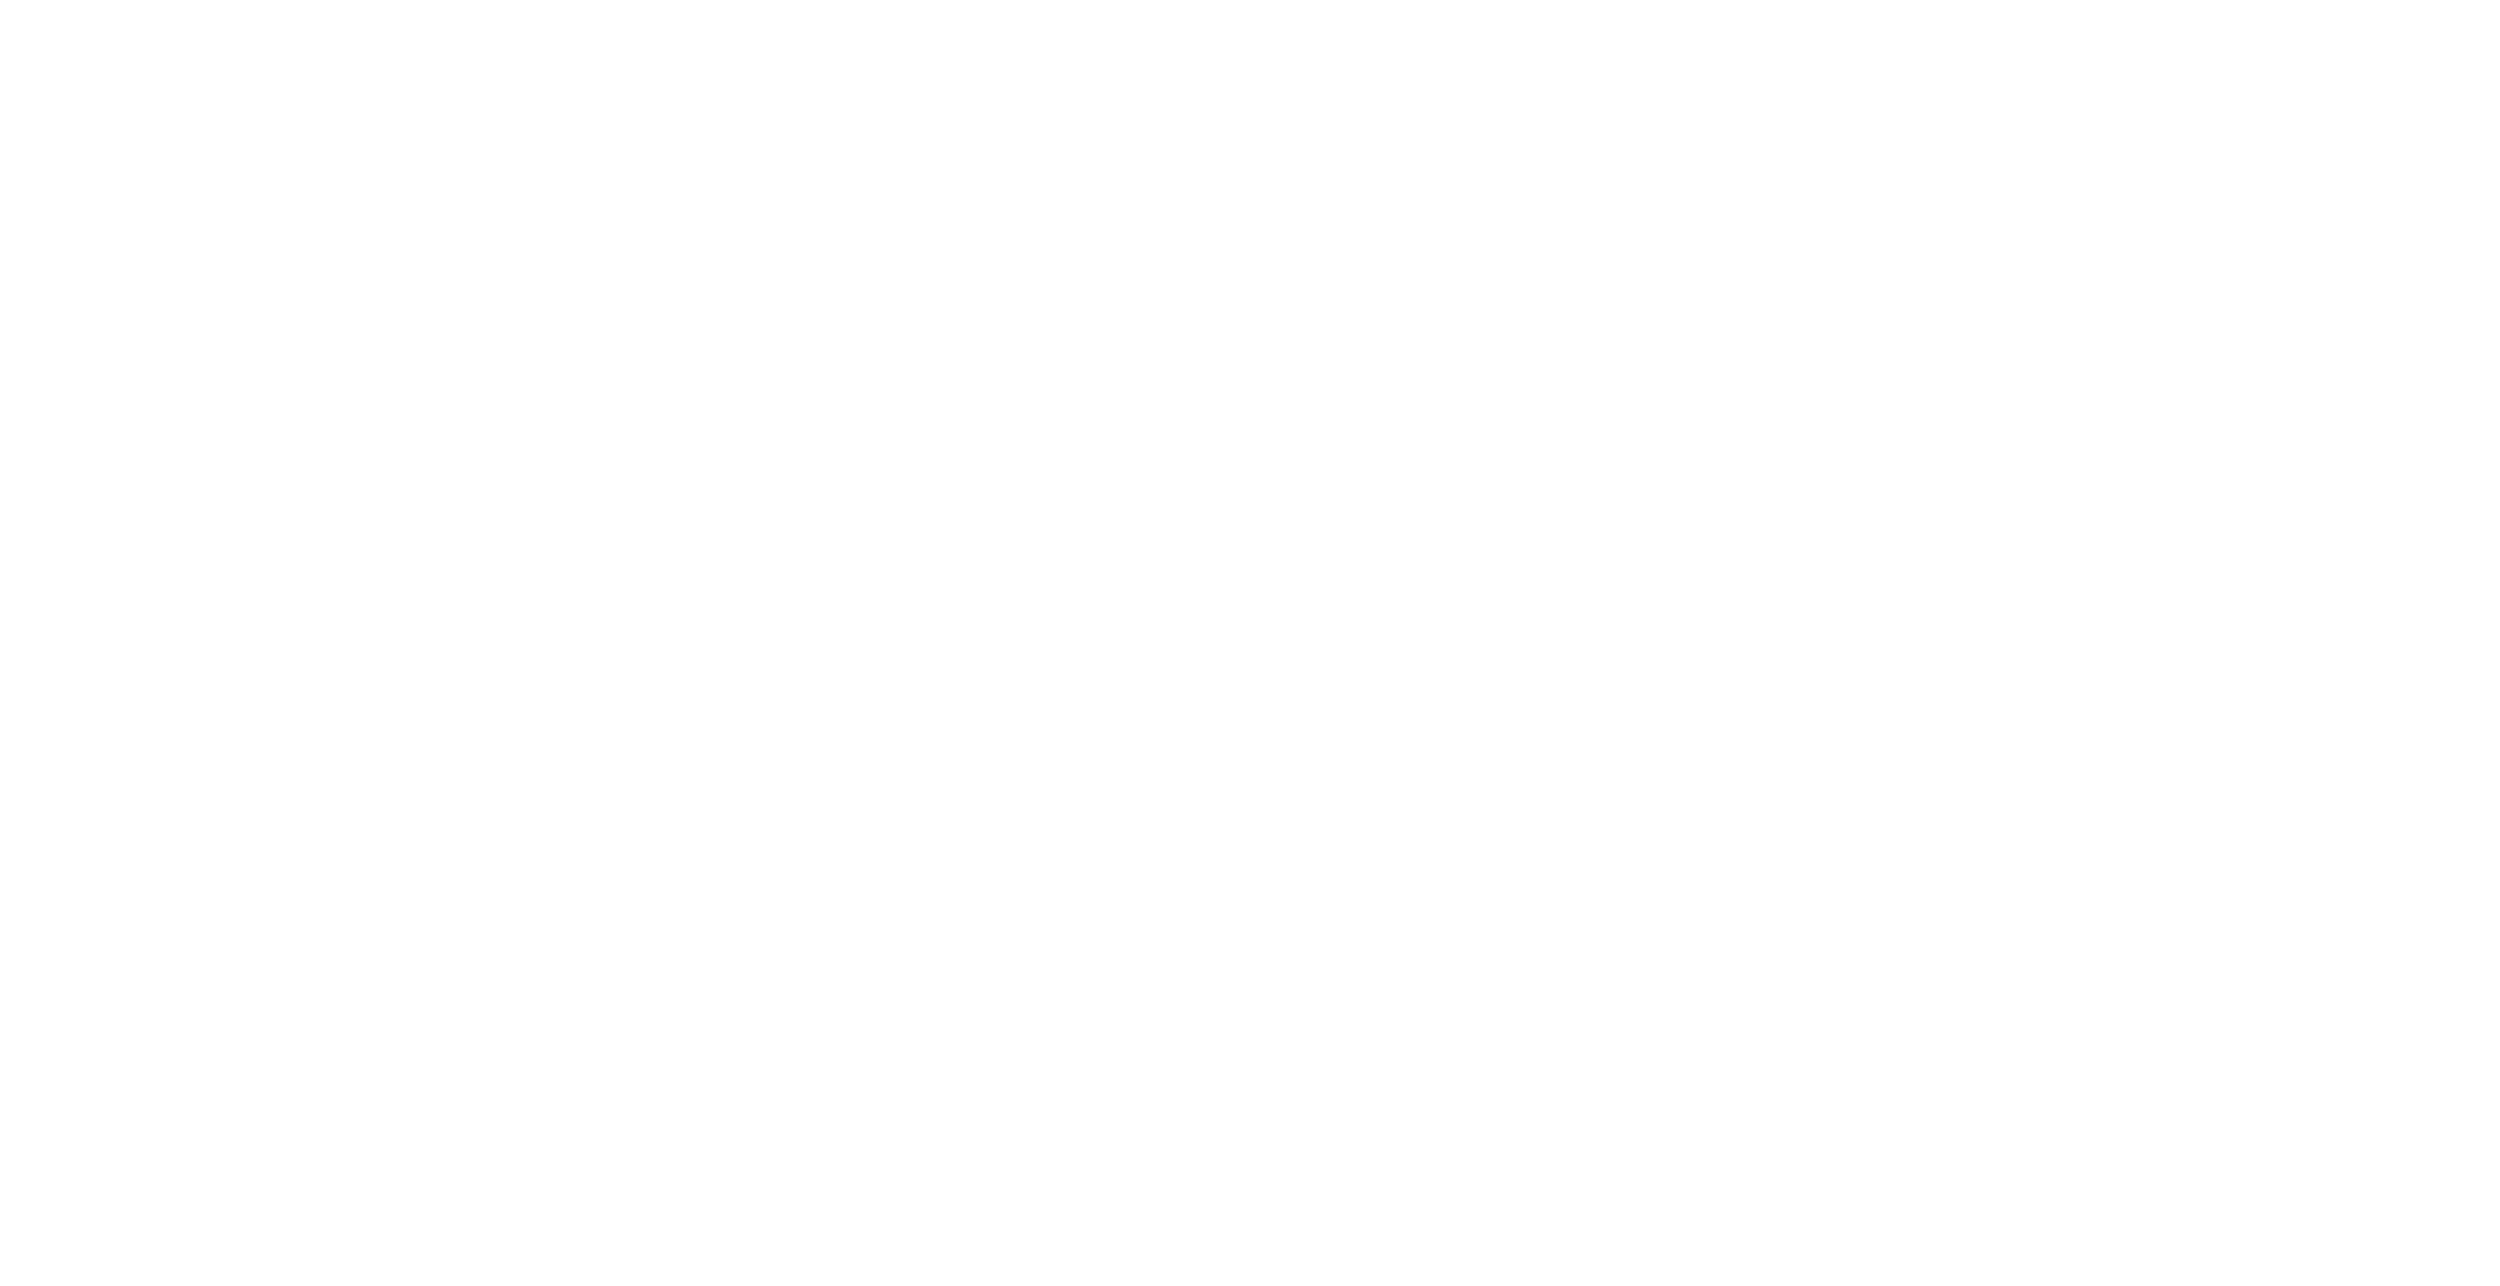 United Nation Association in Canada